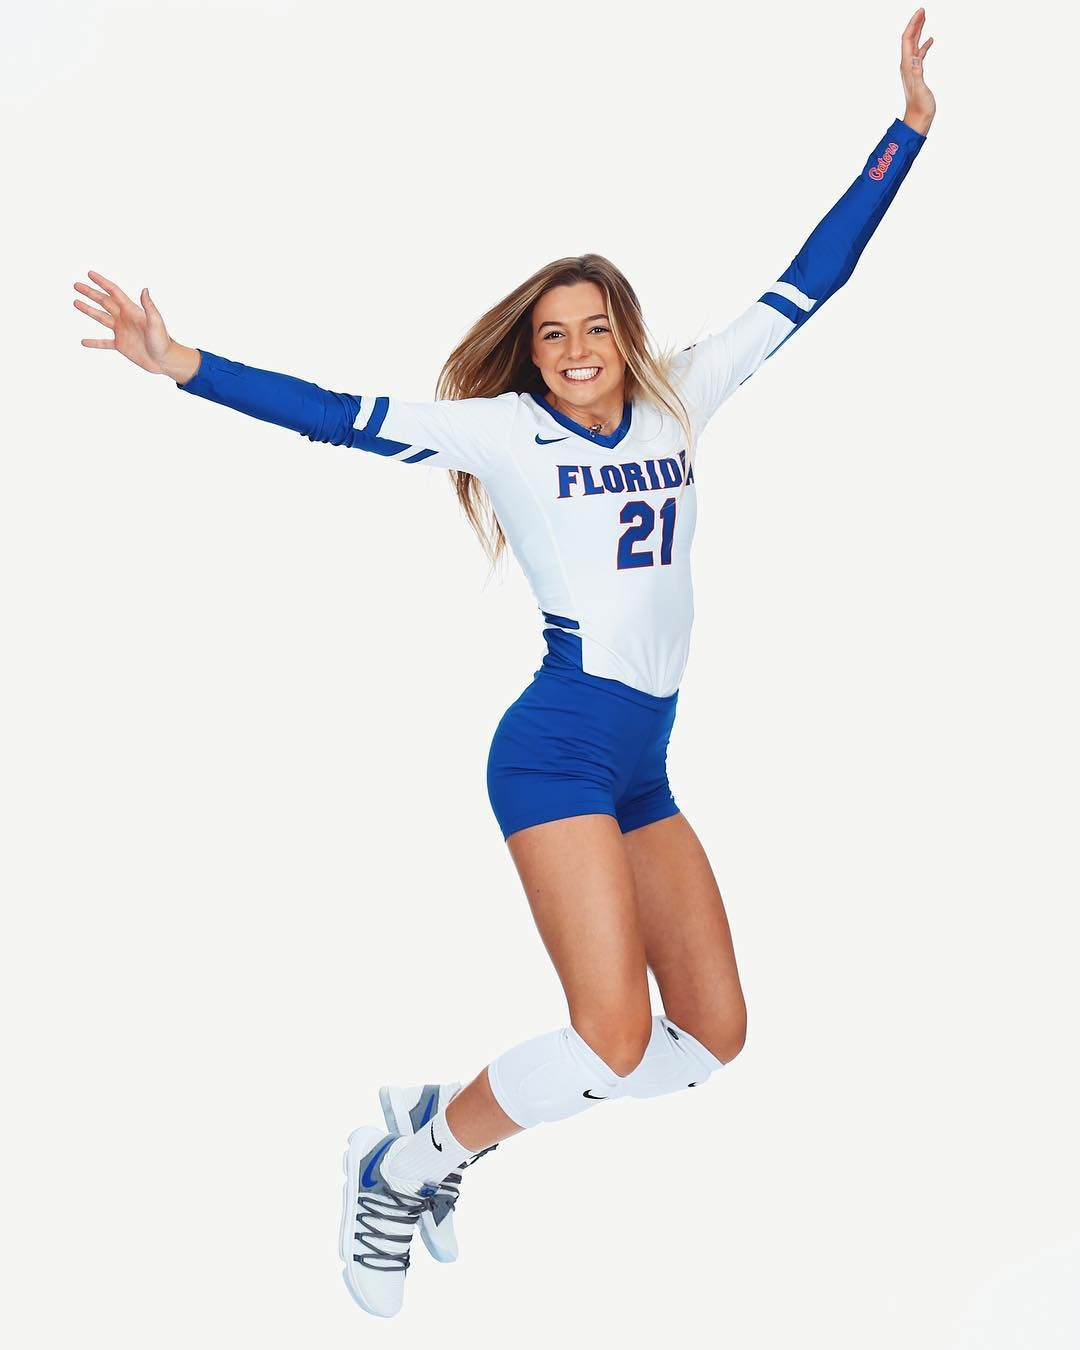 jump if you're excited for season! Gymnastics pictures